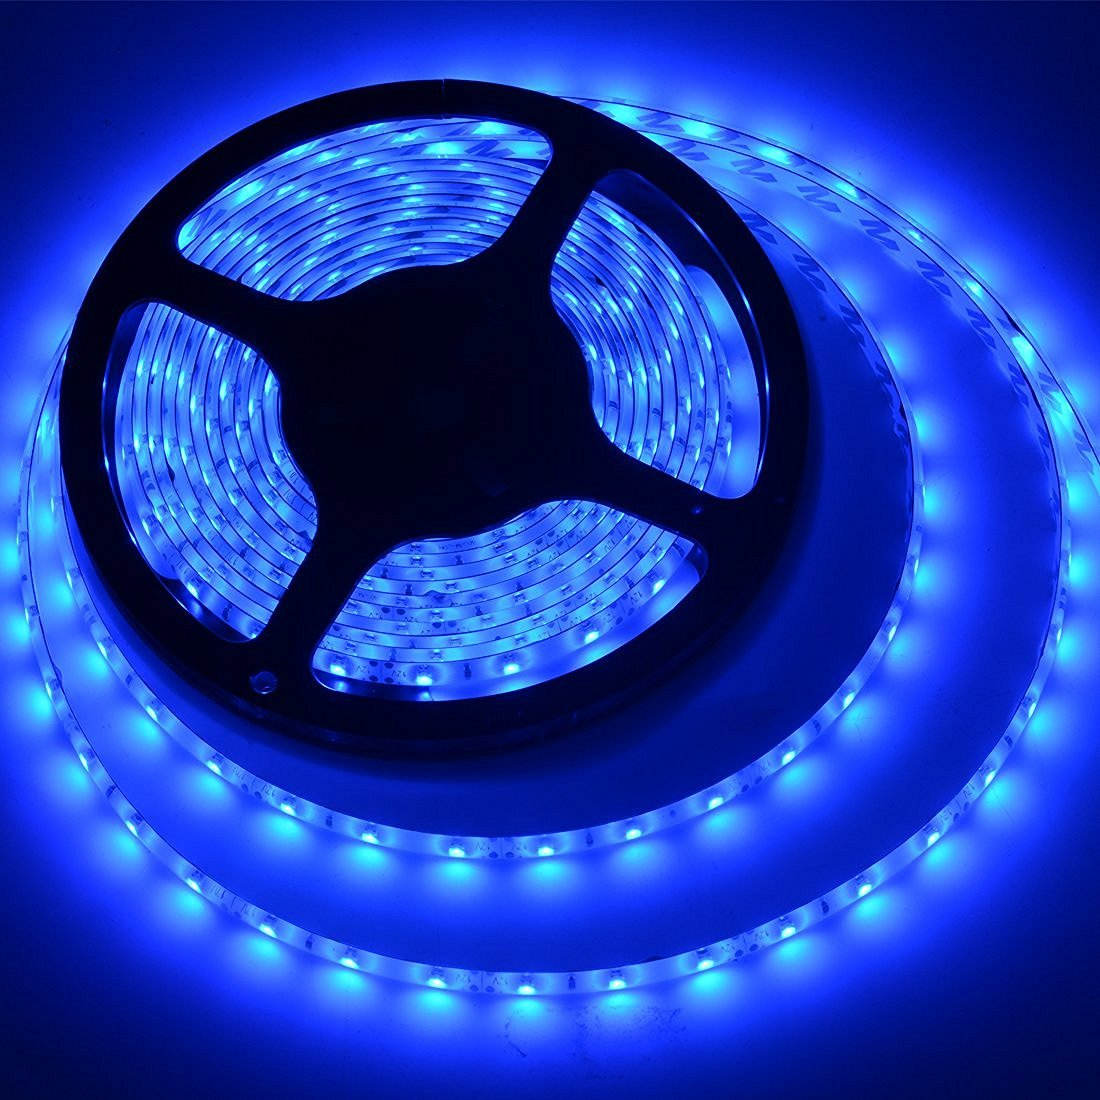 Amazon meili led light strip smd 3528 164 ft 5 meter amazon meili led light strip smd 3528 164 ft 5 meter waterproof 300 leds 12v flexible rope light no power supply blue home improvement aloadofball Choice Image